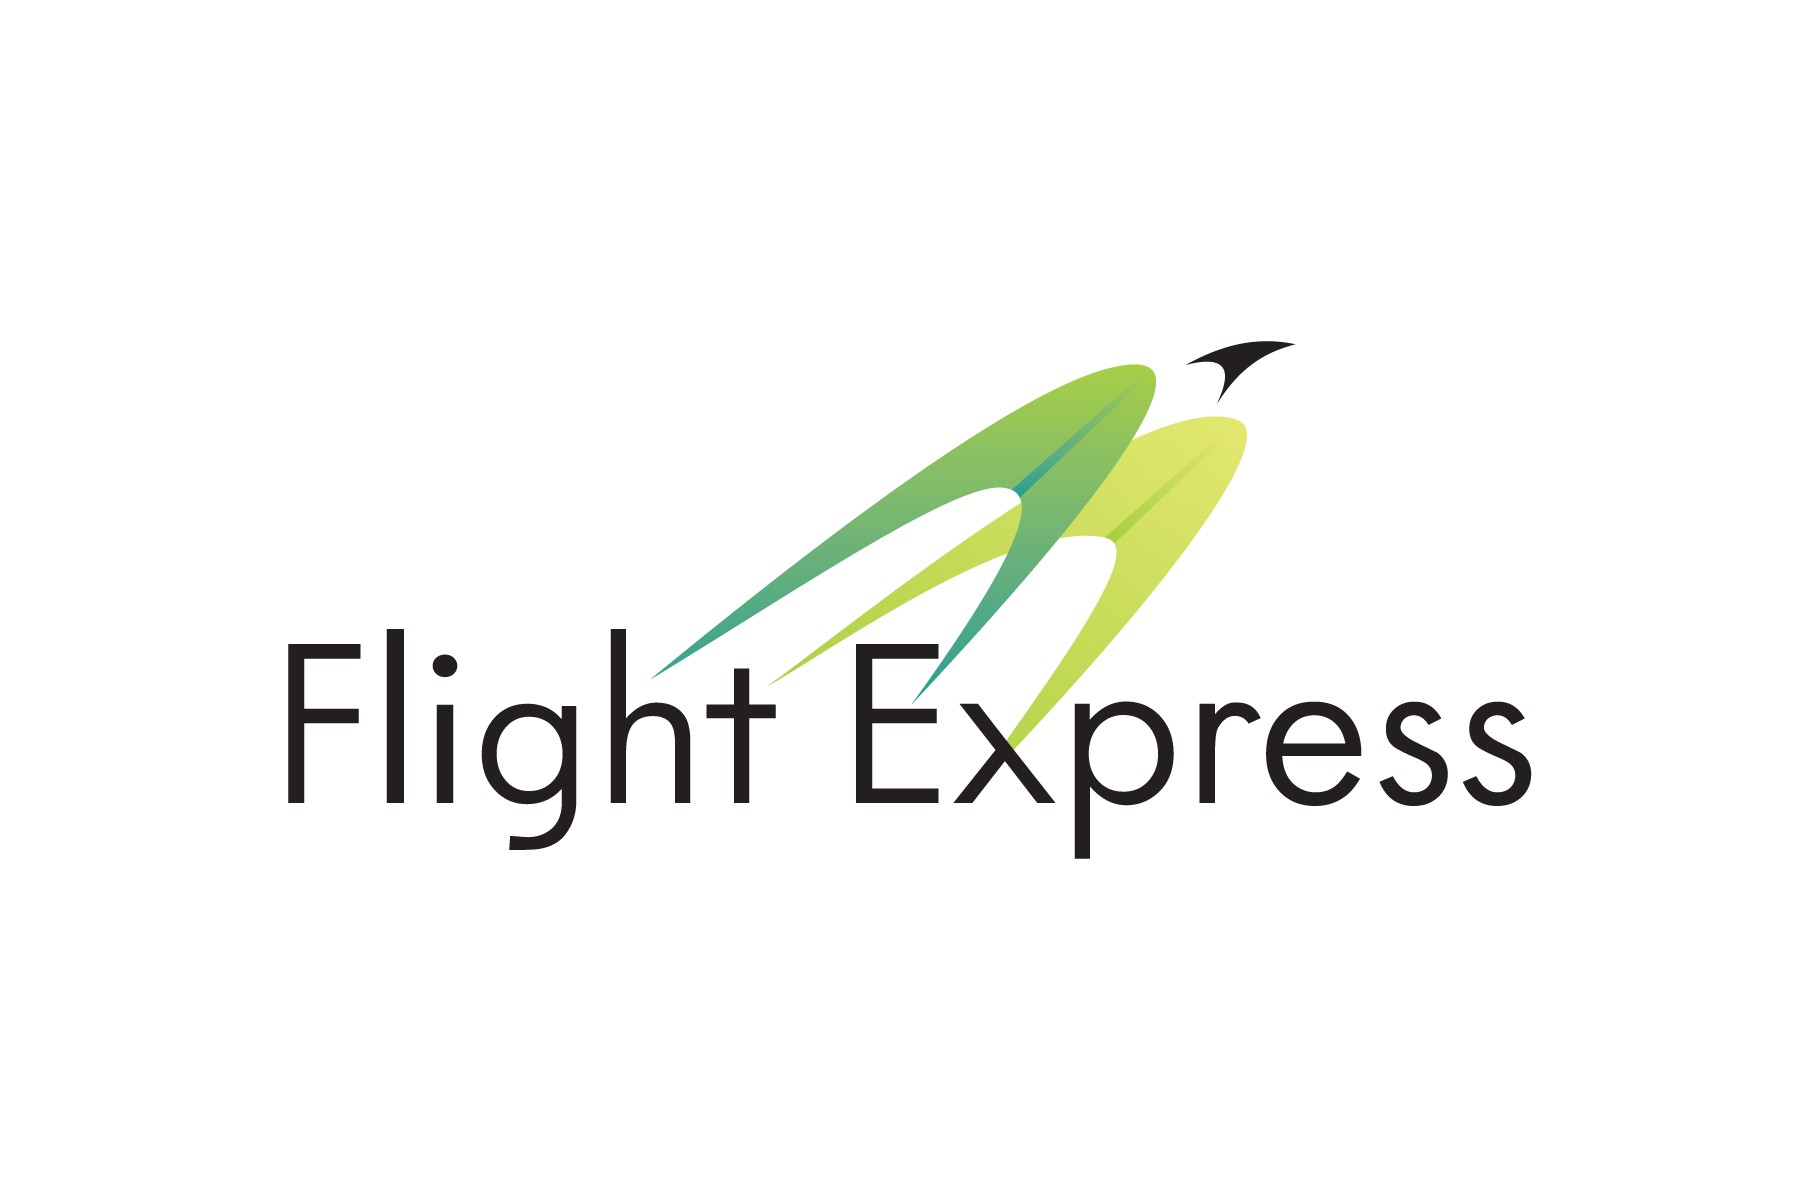 Flight Express